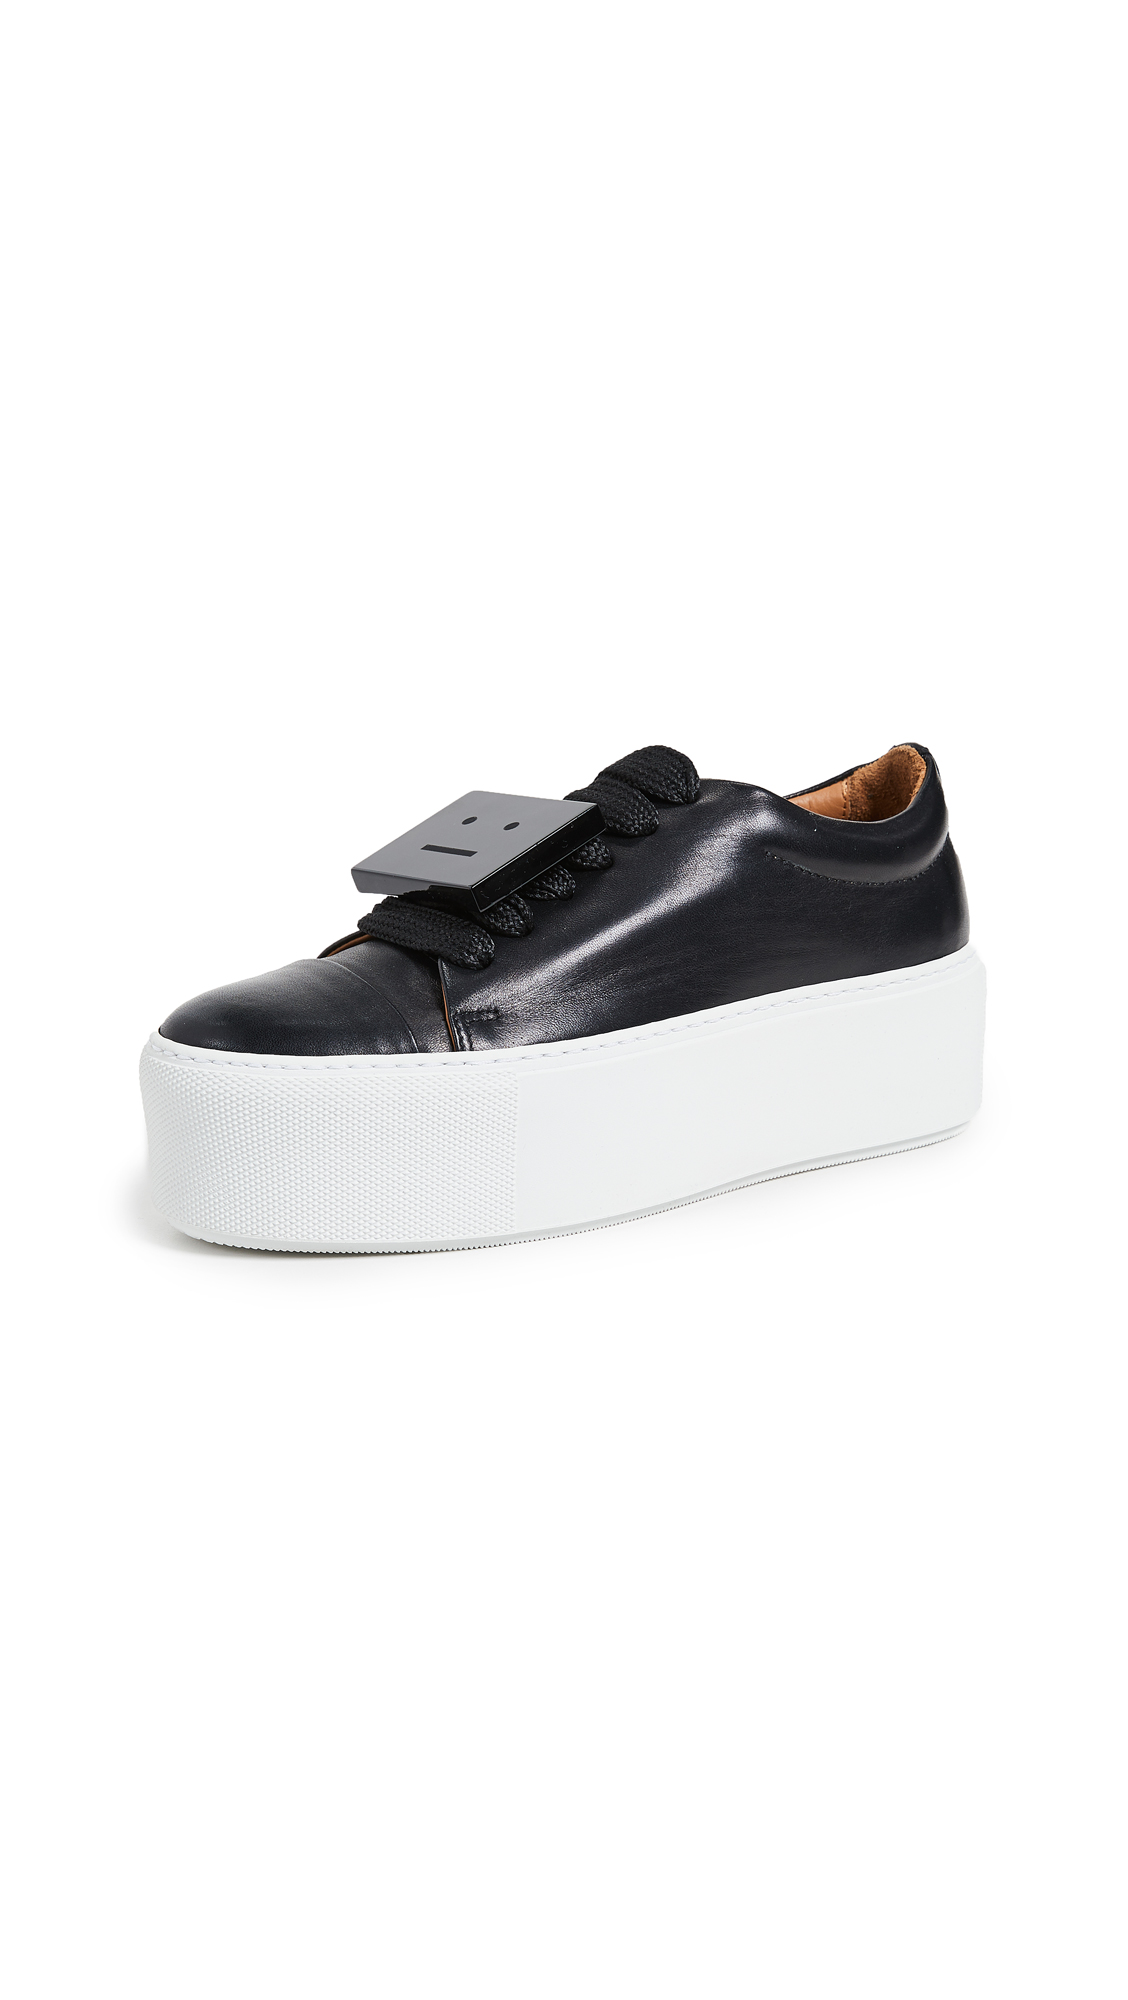 Acne Studios Drihannah Sneakers - Black/White